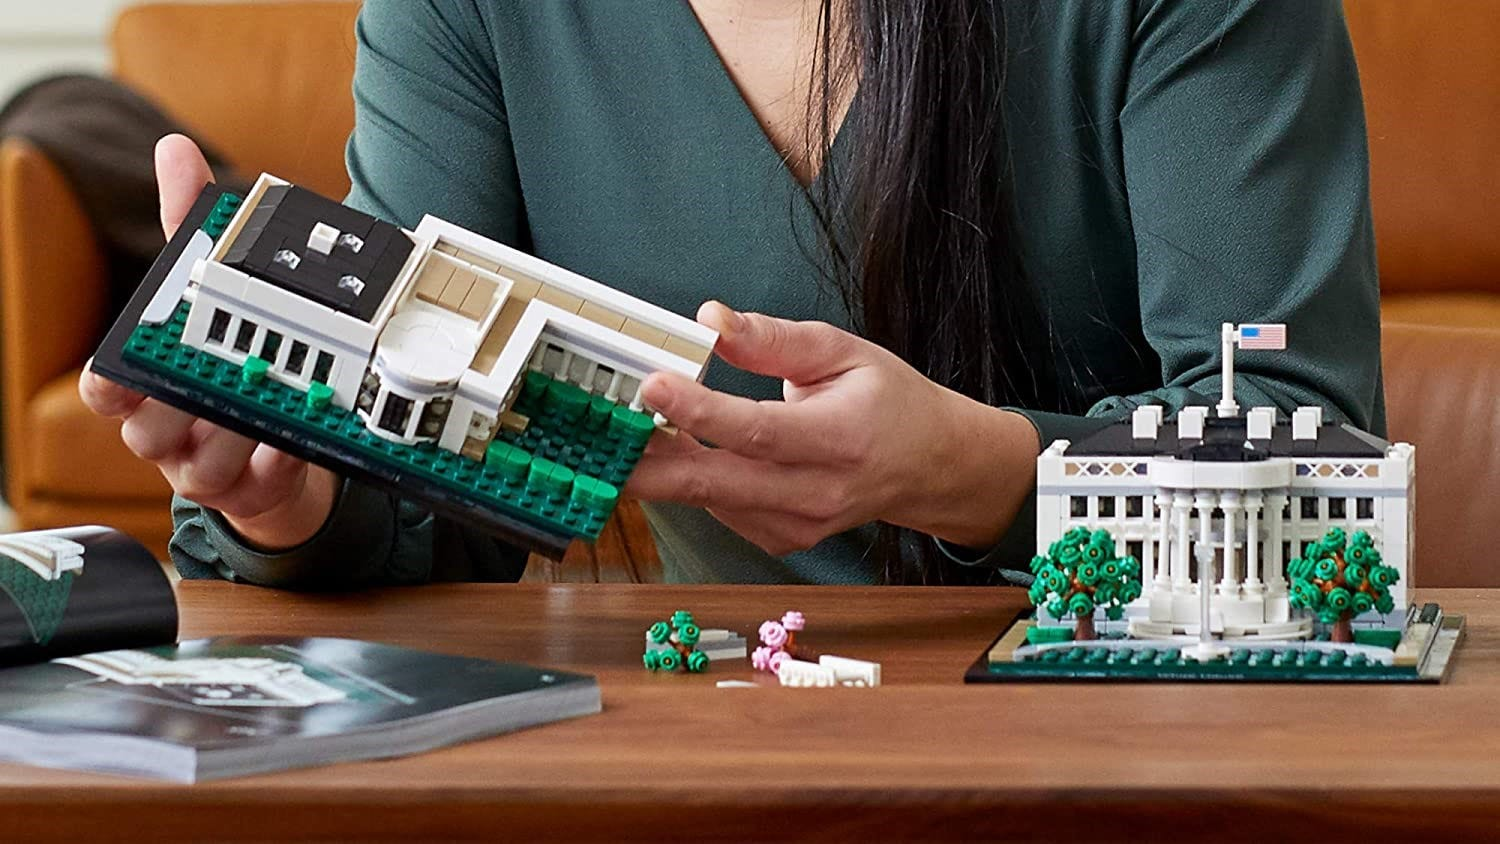 A woman assembling the LEGO White House on a table.